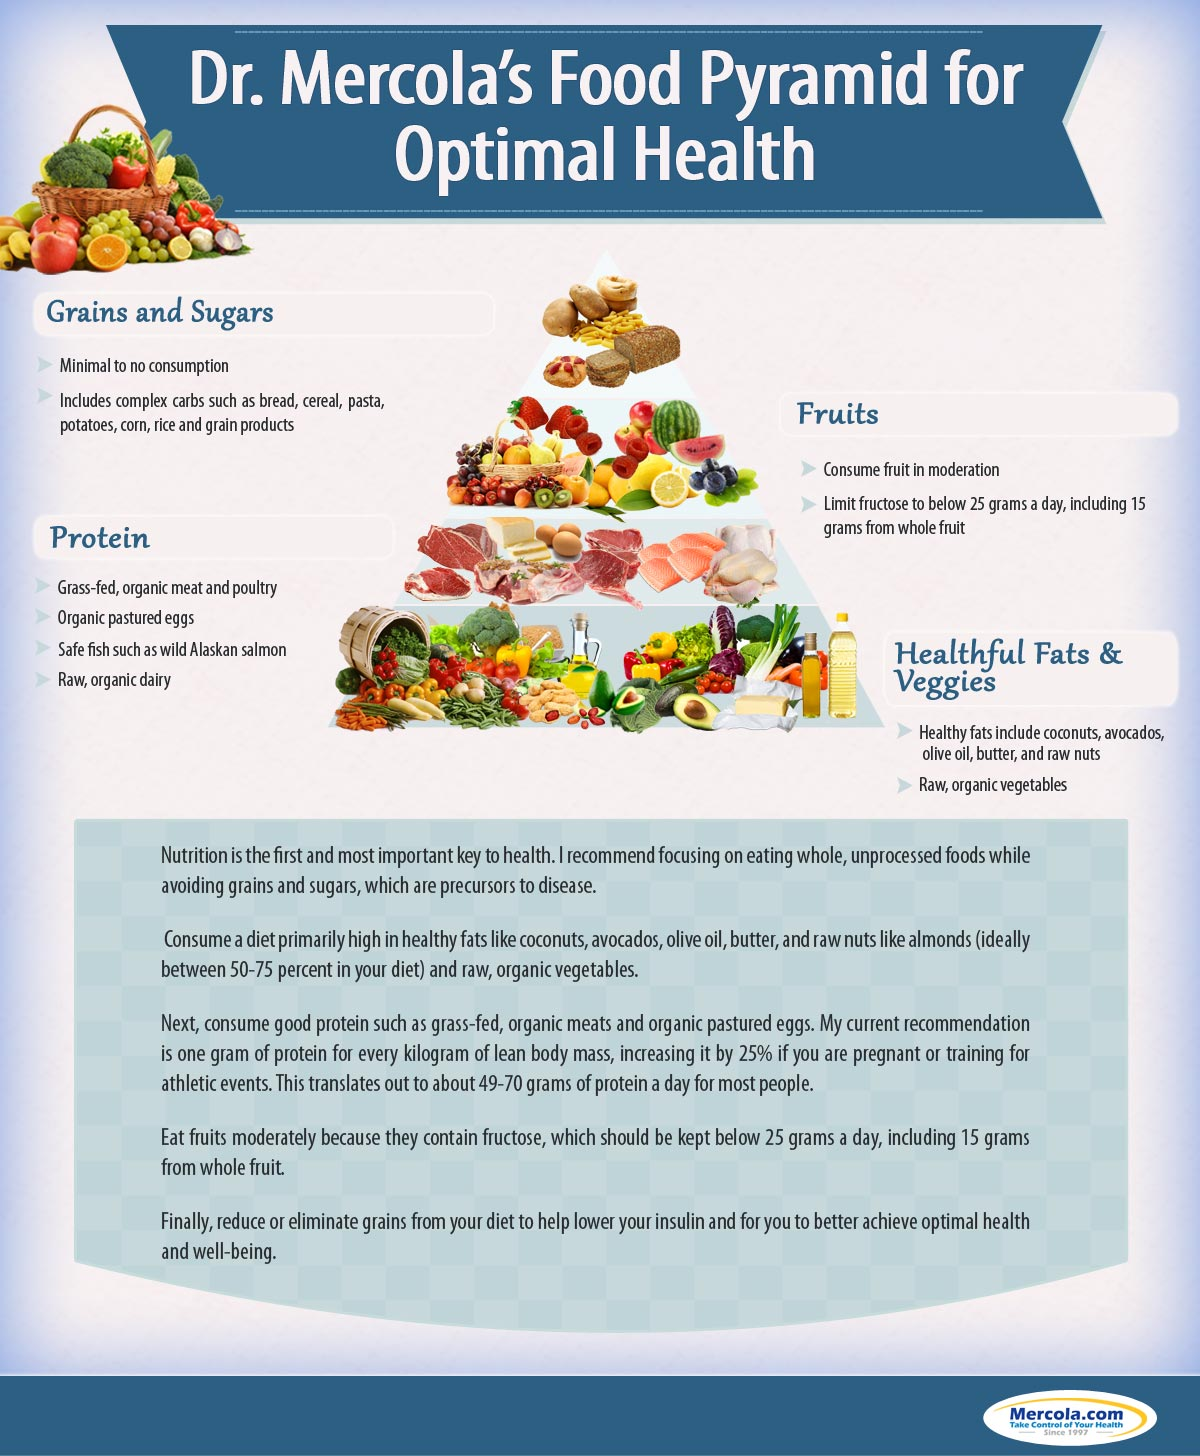 http://media.mercola.com/assets/images/infographic/Mercola-Food-Pyramid-v2.jpg